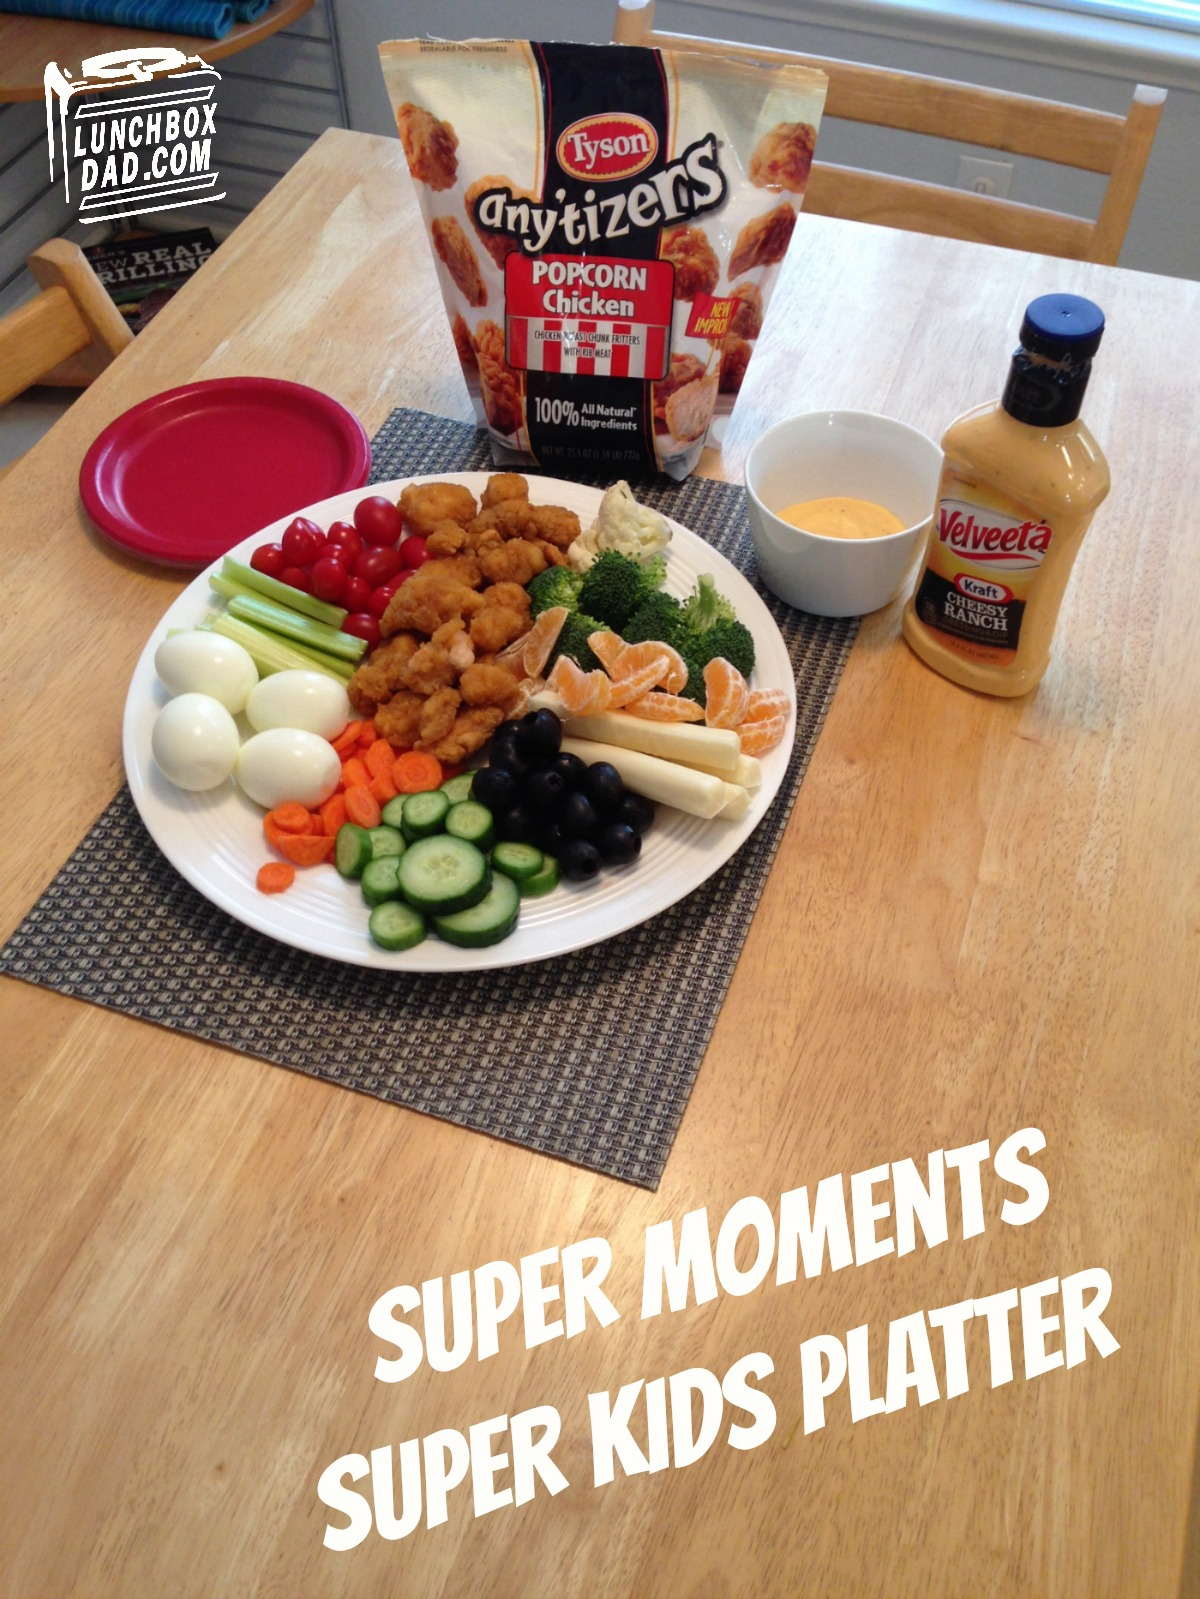 Tyson Super Moments Super Kids Platter #SuperMoments #ad #cbias